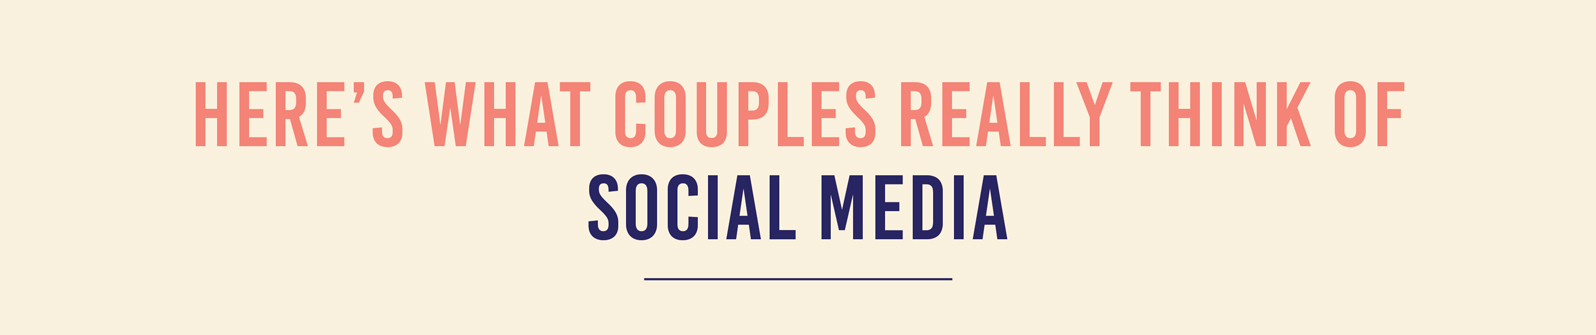 Infographic Title Here's What Couples Really Think of Social Media